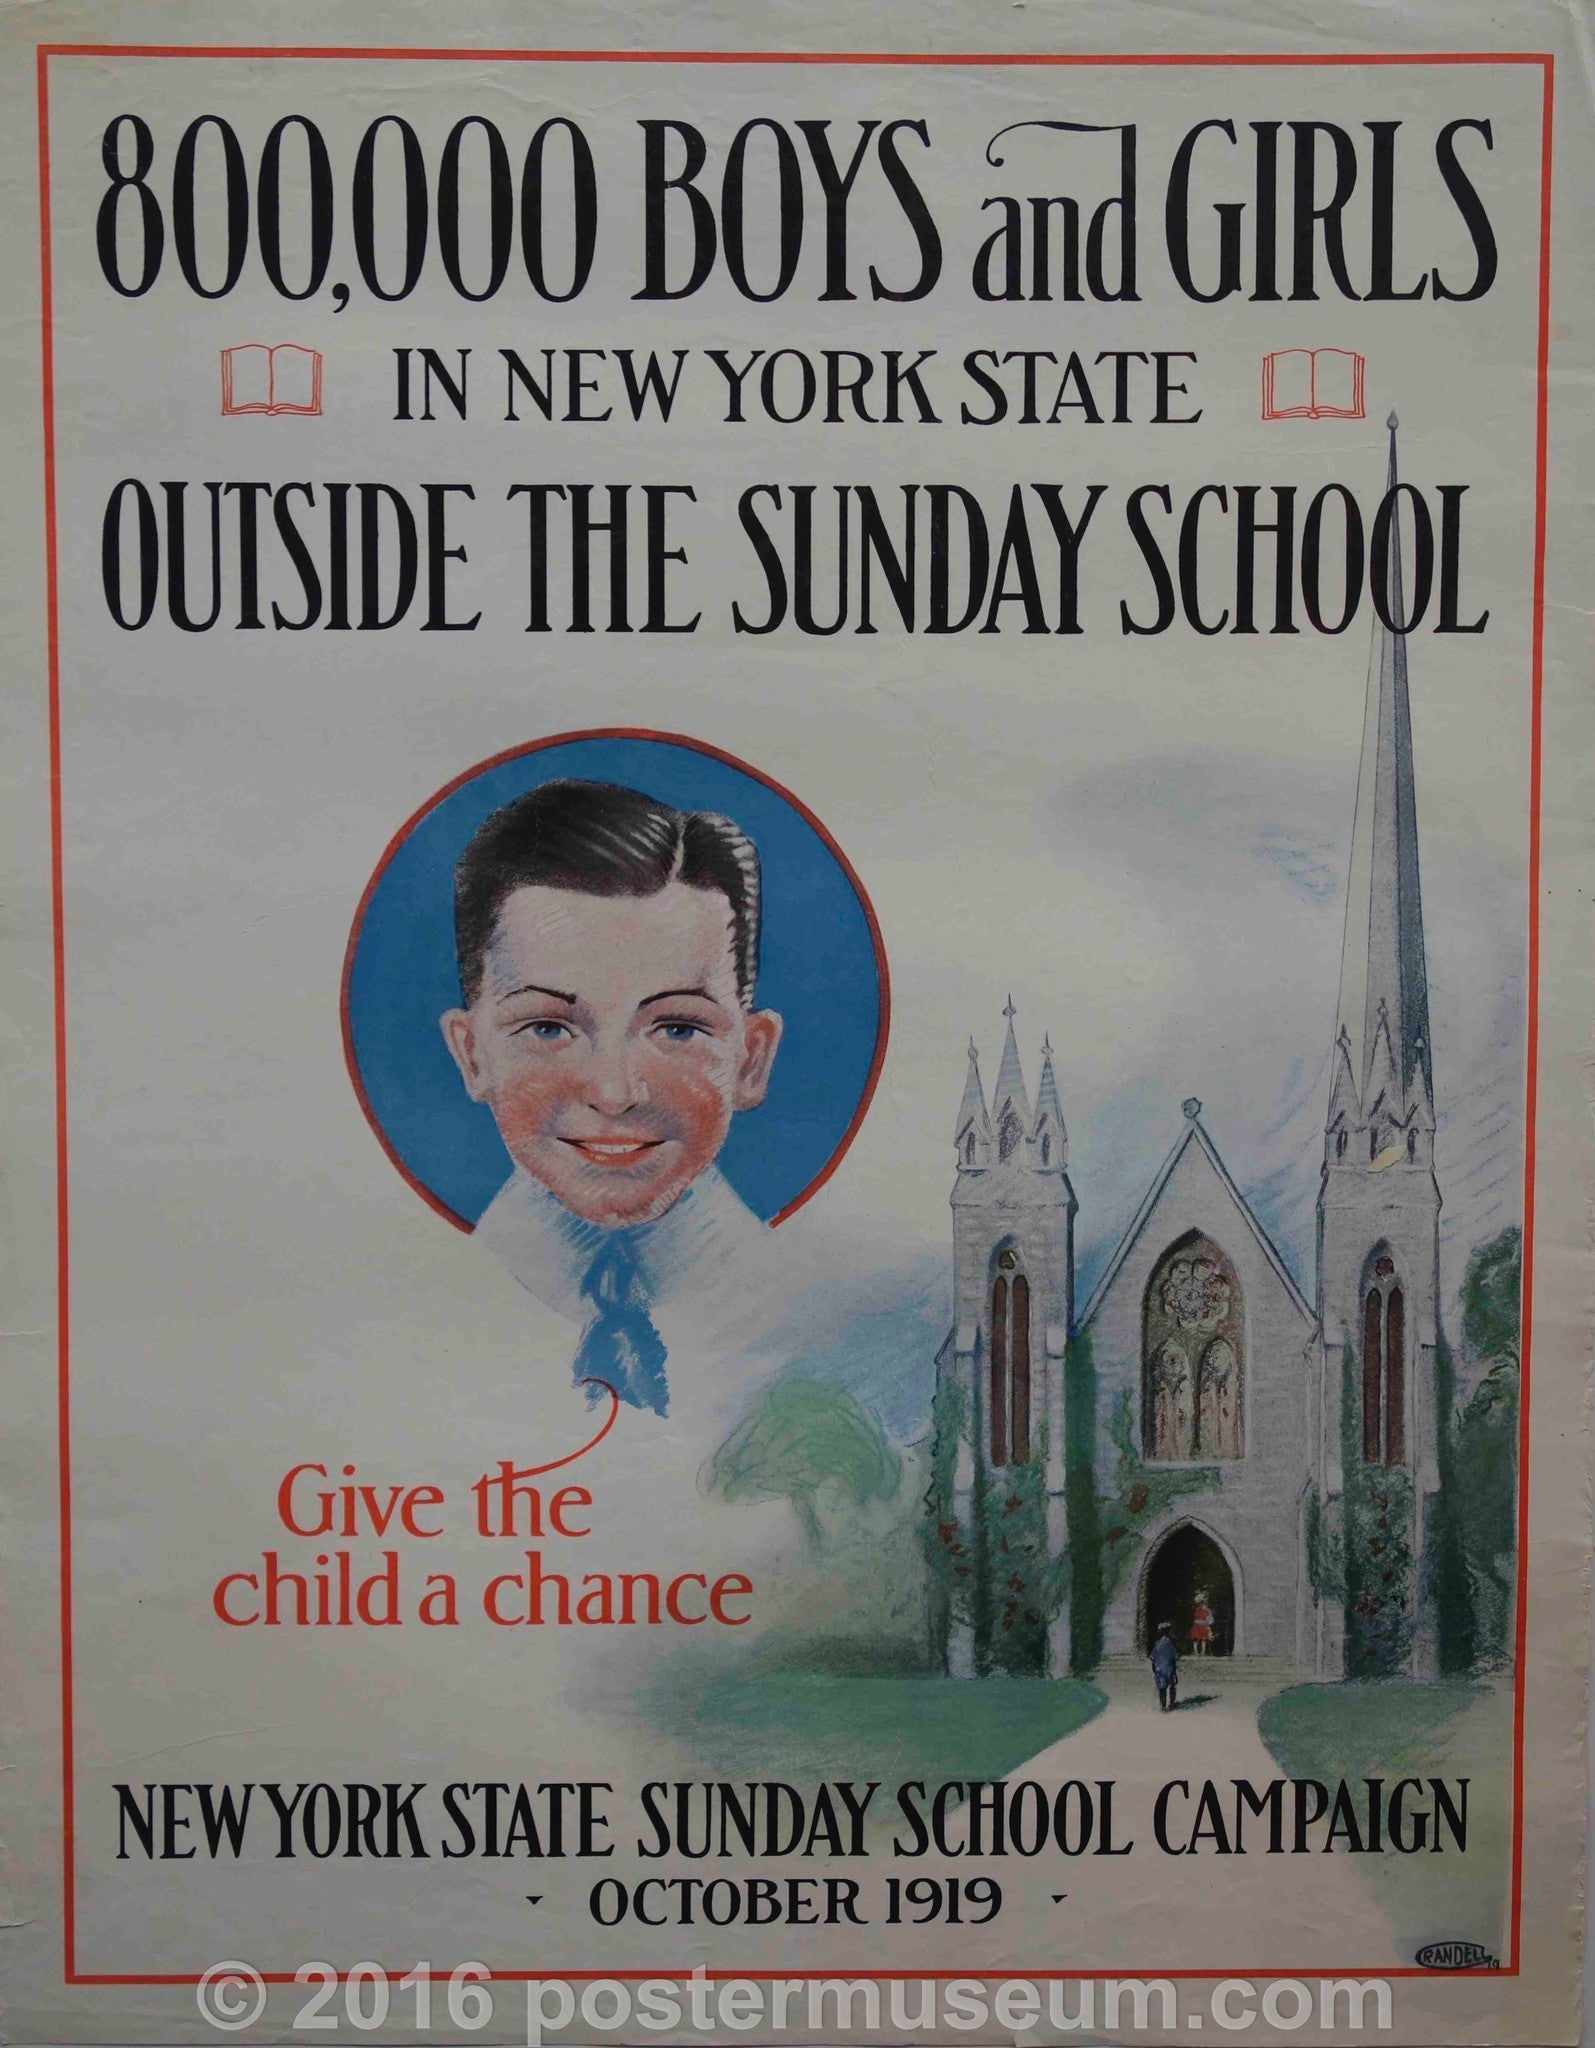 New York State Sunday School Campaign